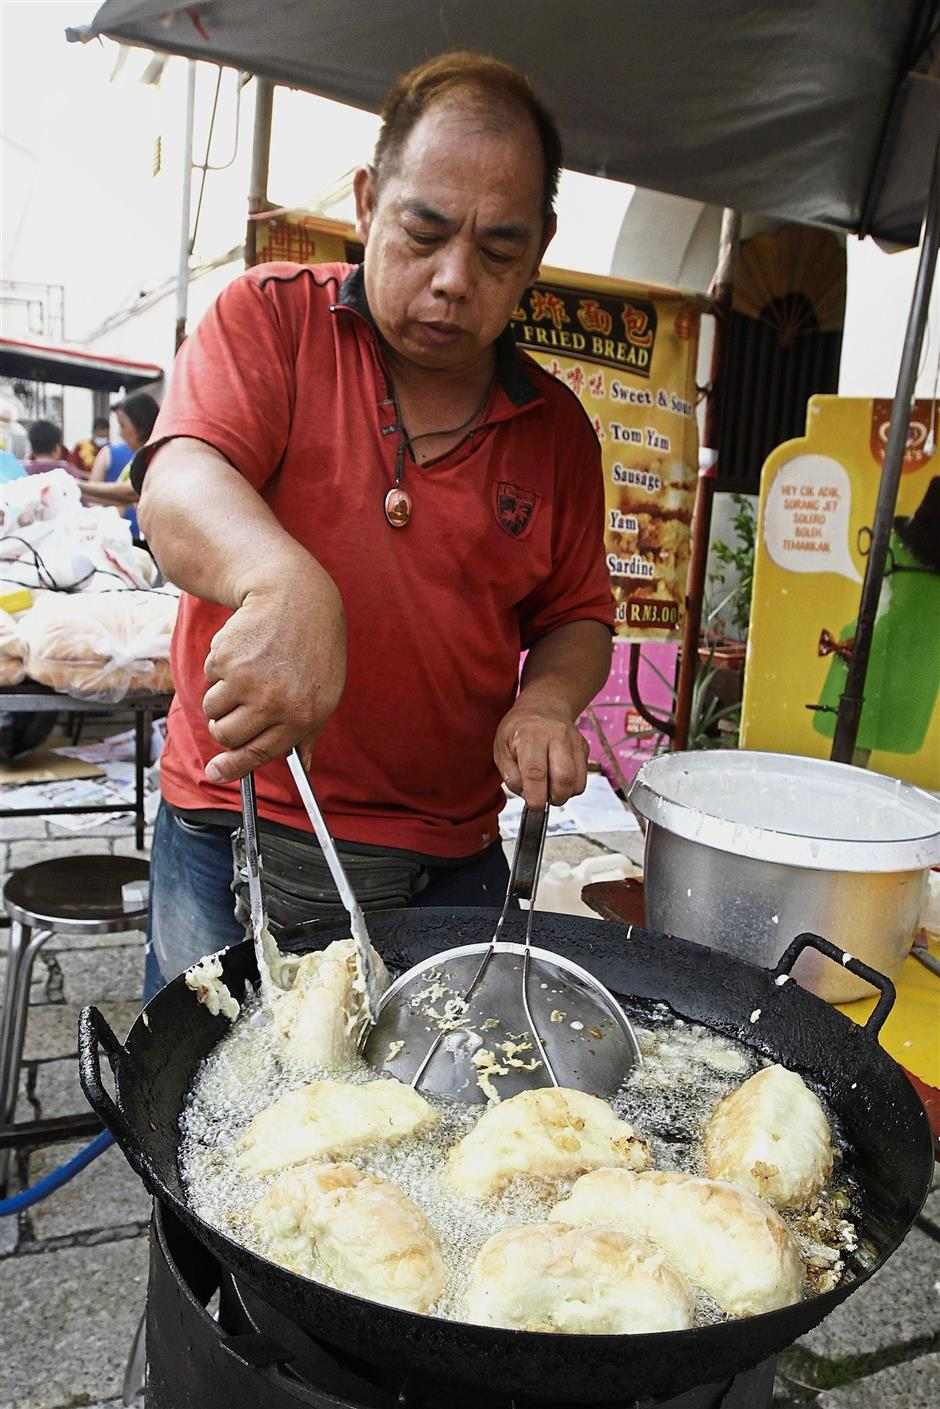 A hawker busy preparing fried bread snacks at one of the stalls.